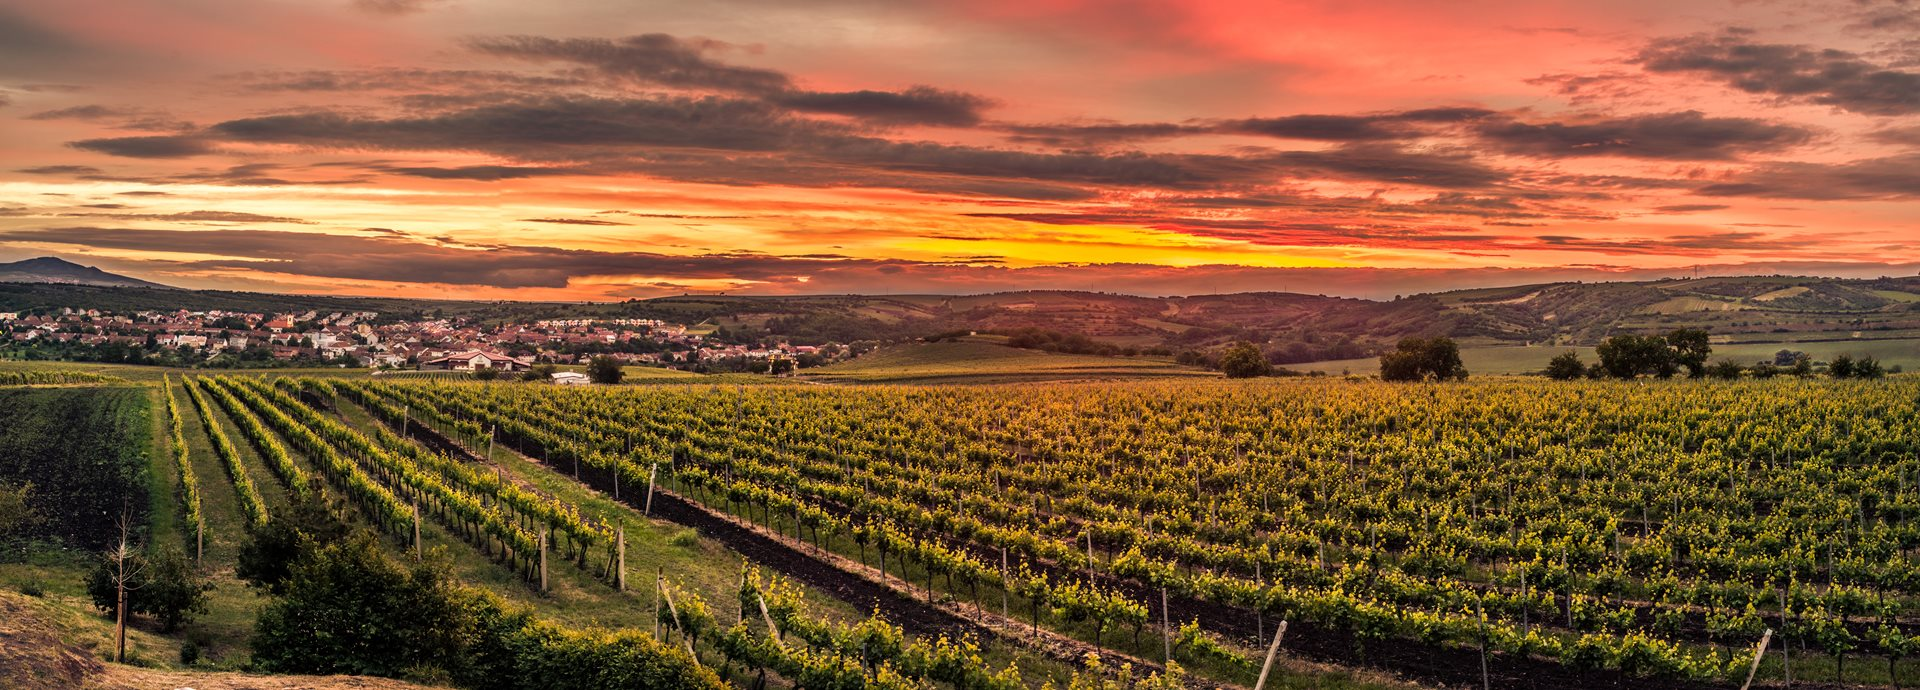 The Appeal of Viticultural Architecture